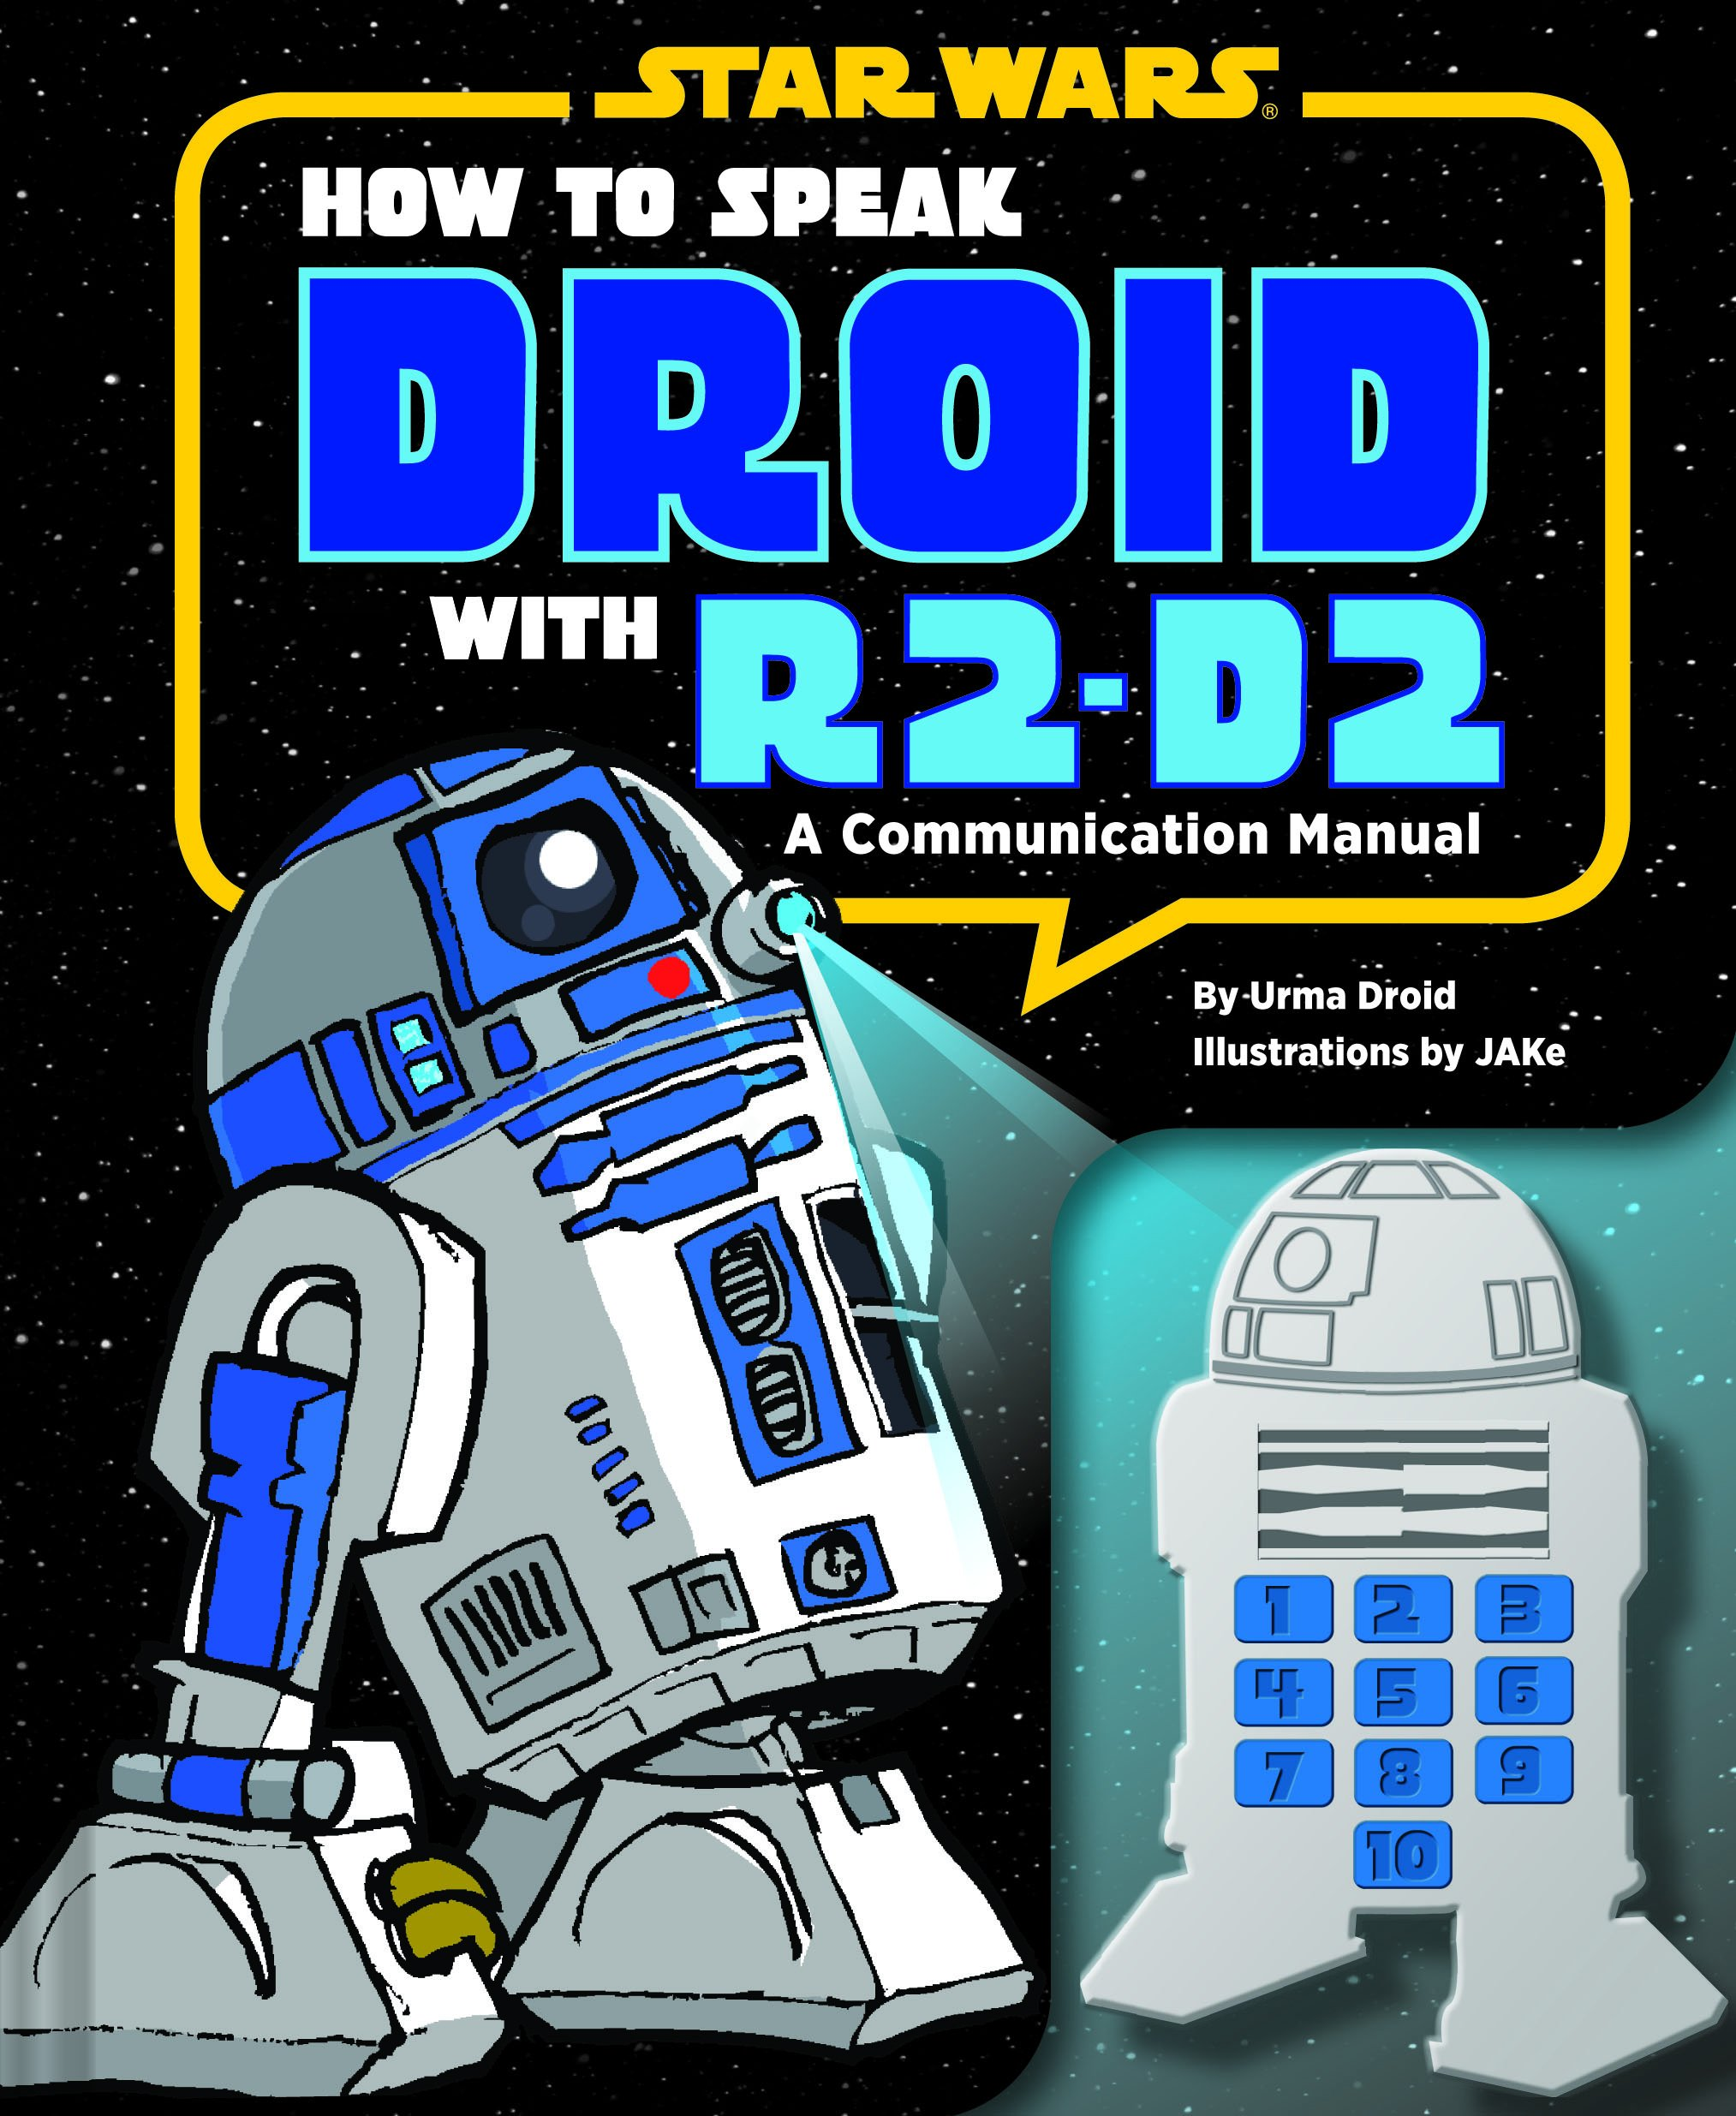 Read Online How to Speak Droid with R2-D2: A Communication Manual (Star Wars) PDF